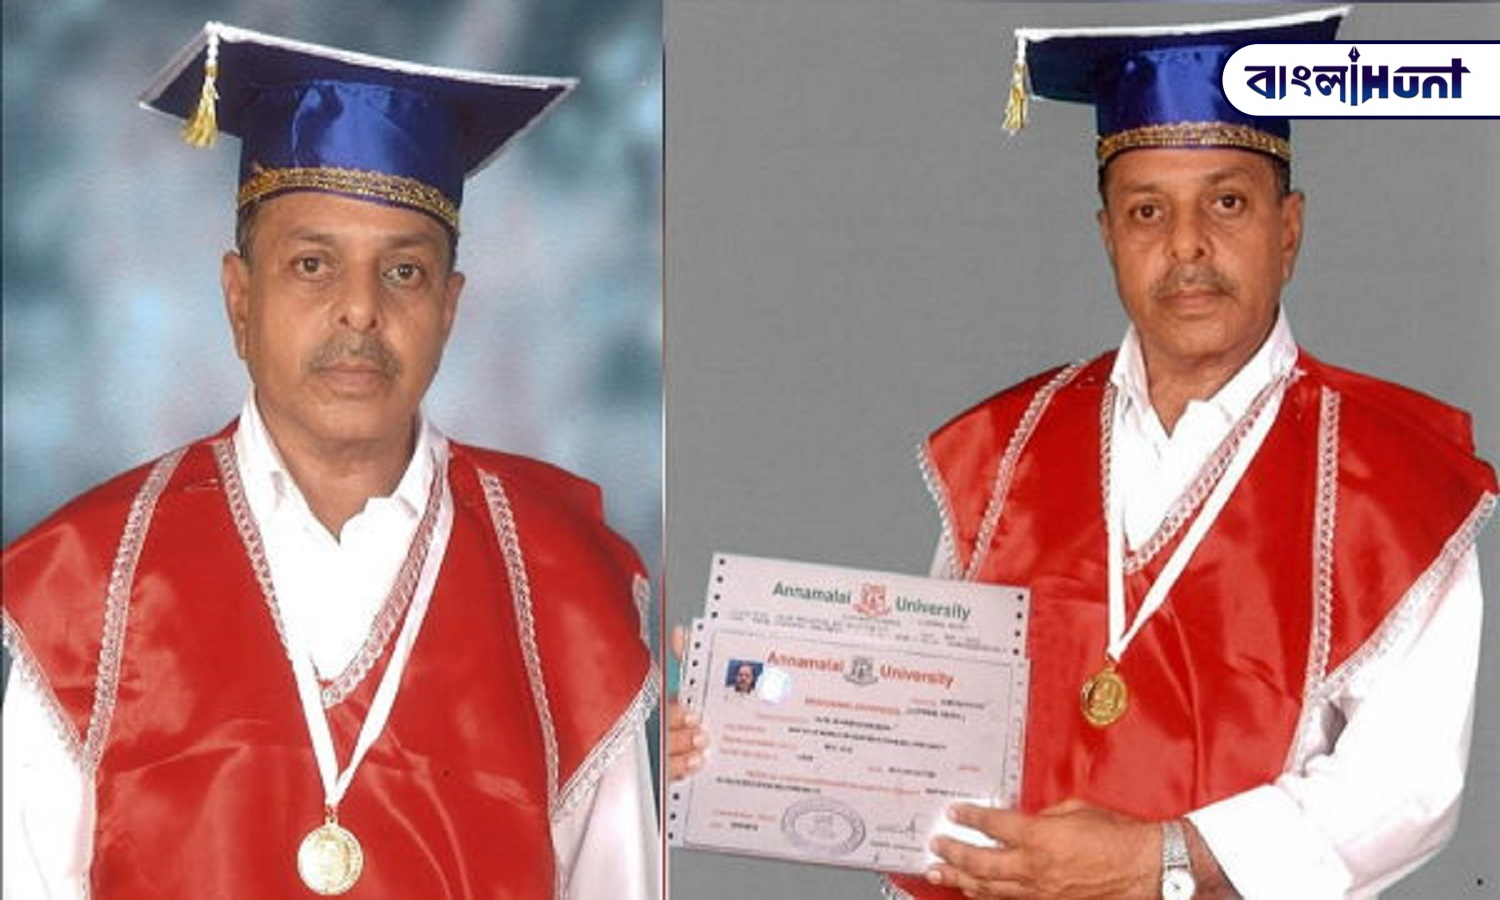 bhanubhai patel obtained 31 degrees from jail in 8 year